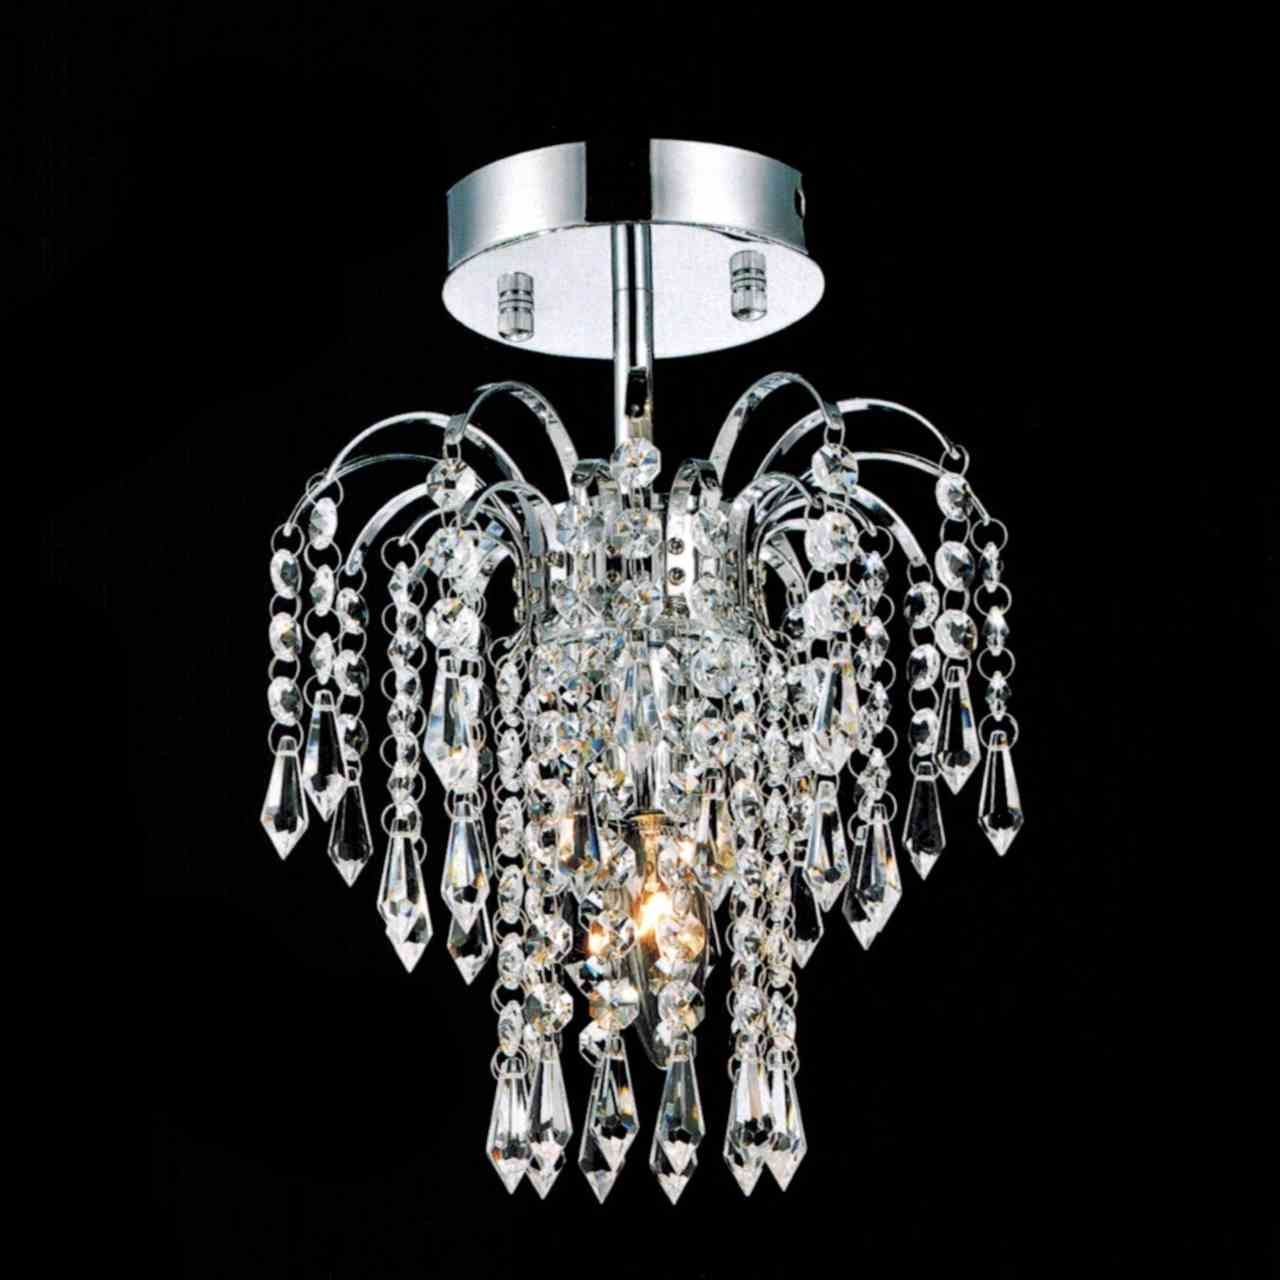 Brizzo Lighting Stores 12 Fountain Crystal Semi Flush Mount Within Small Chrome Chandelier (#3 of 12)